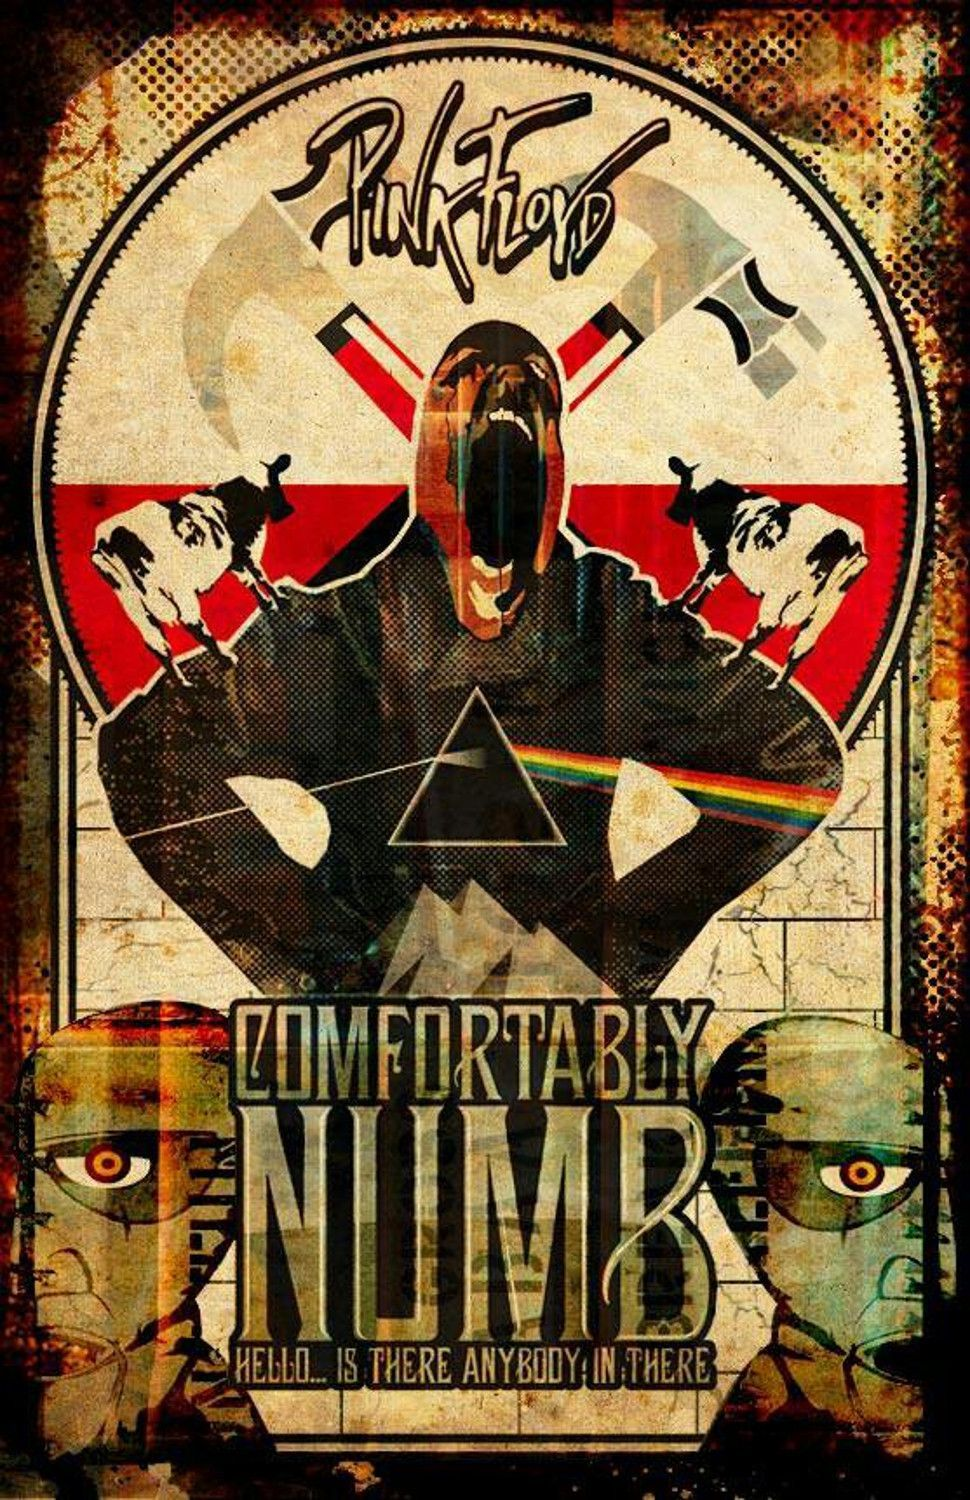 Pink Floyd - Comfortably Numb - Mini Print | Rock Album